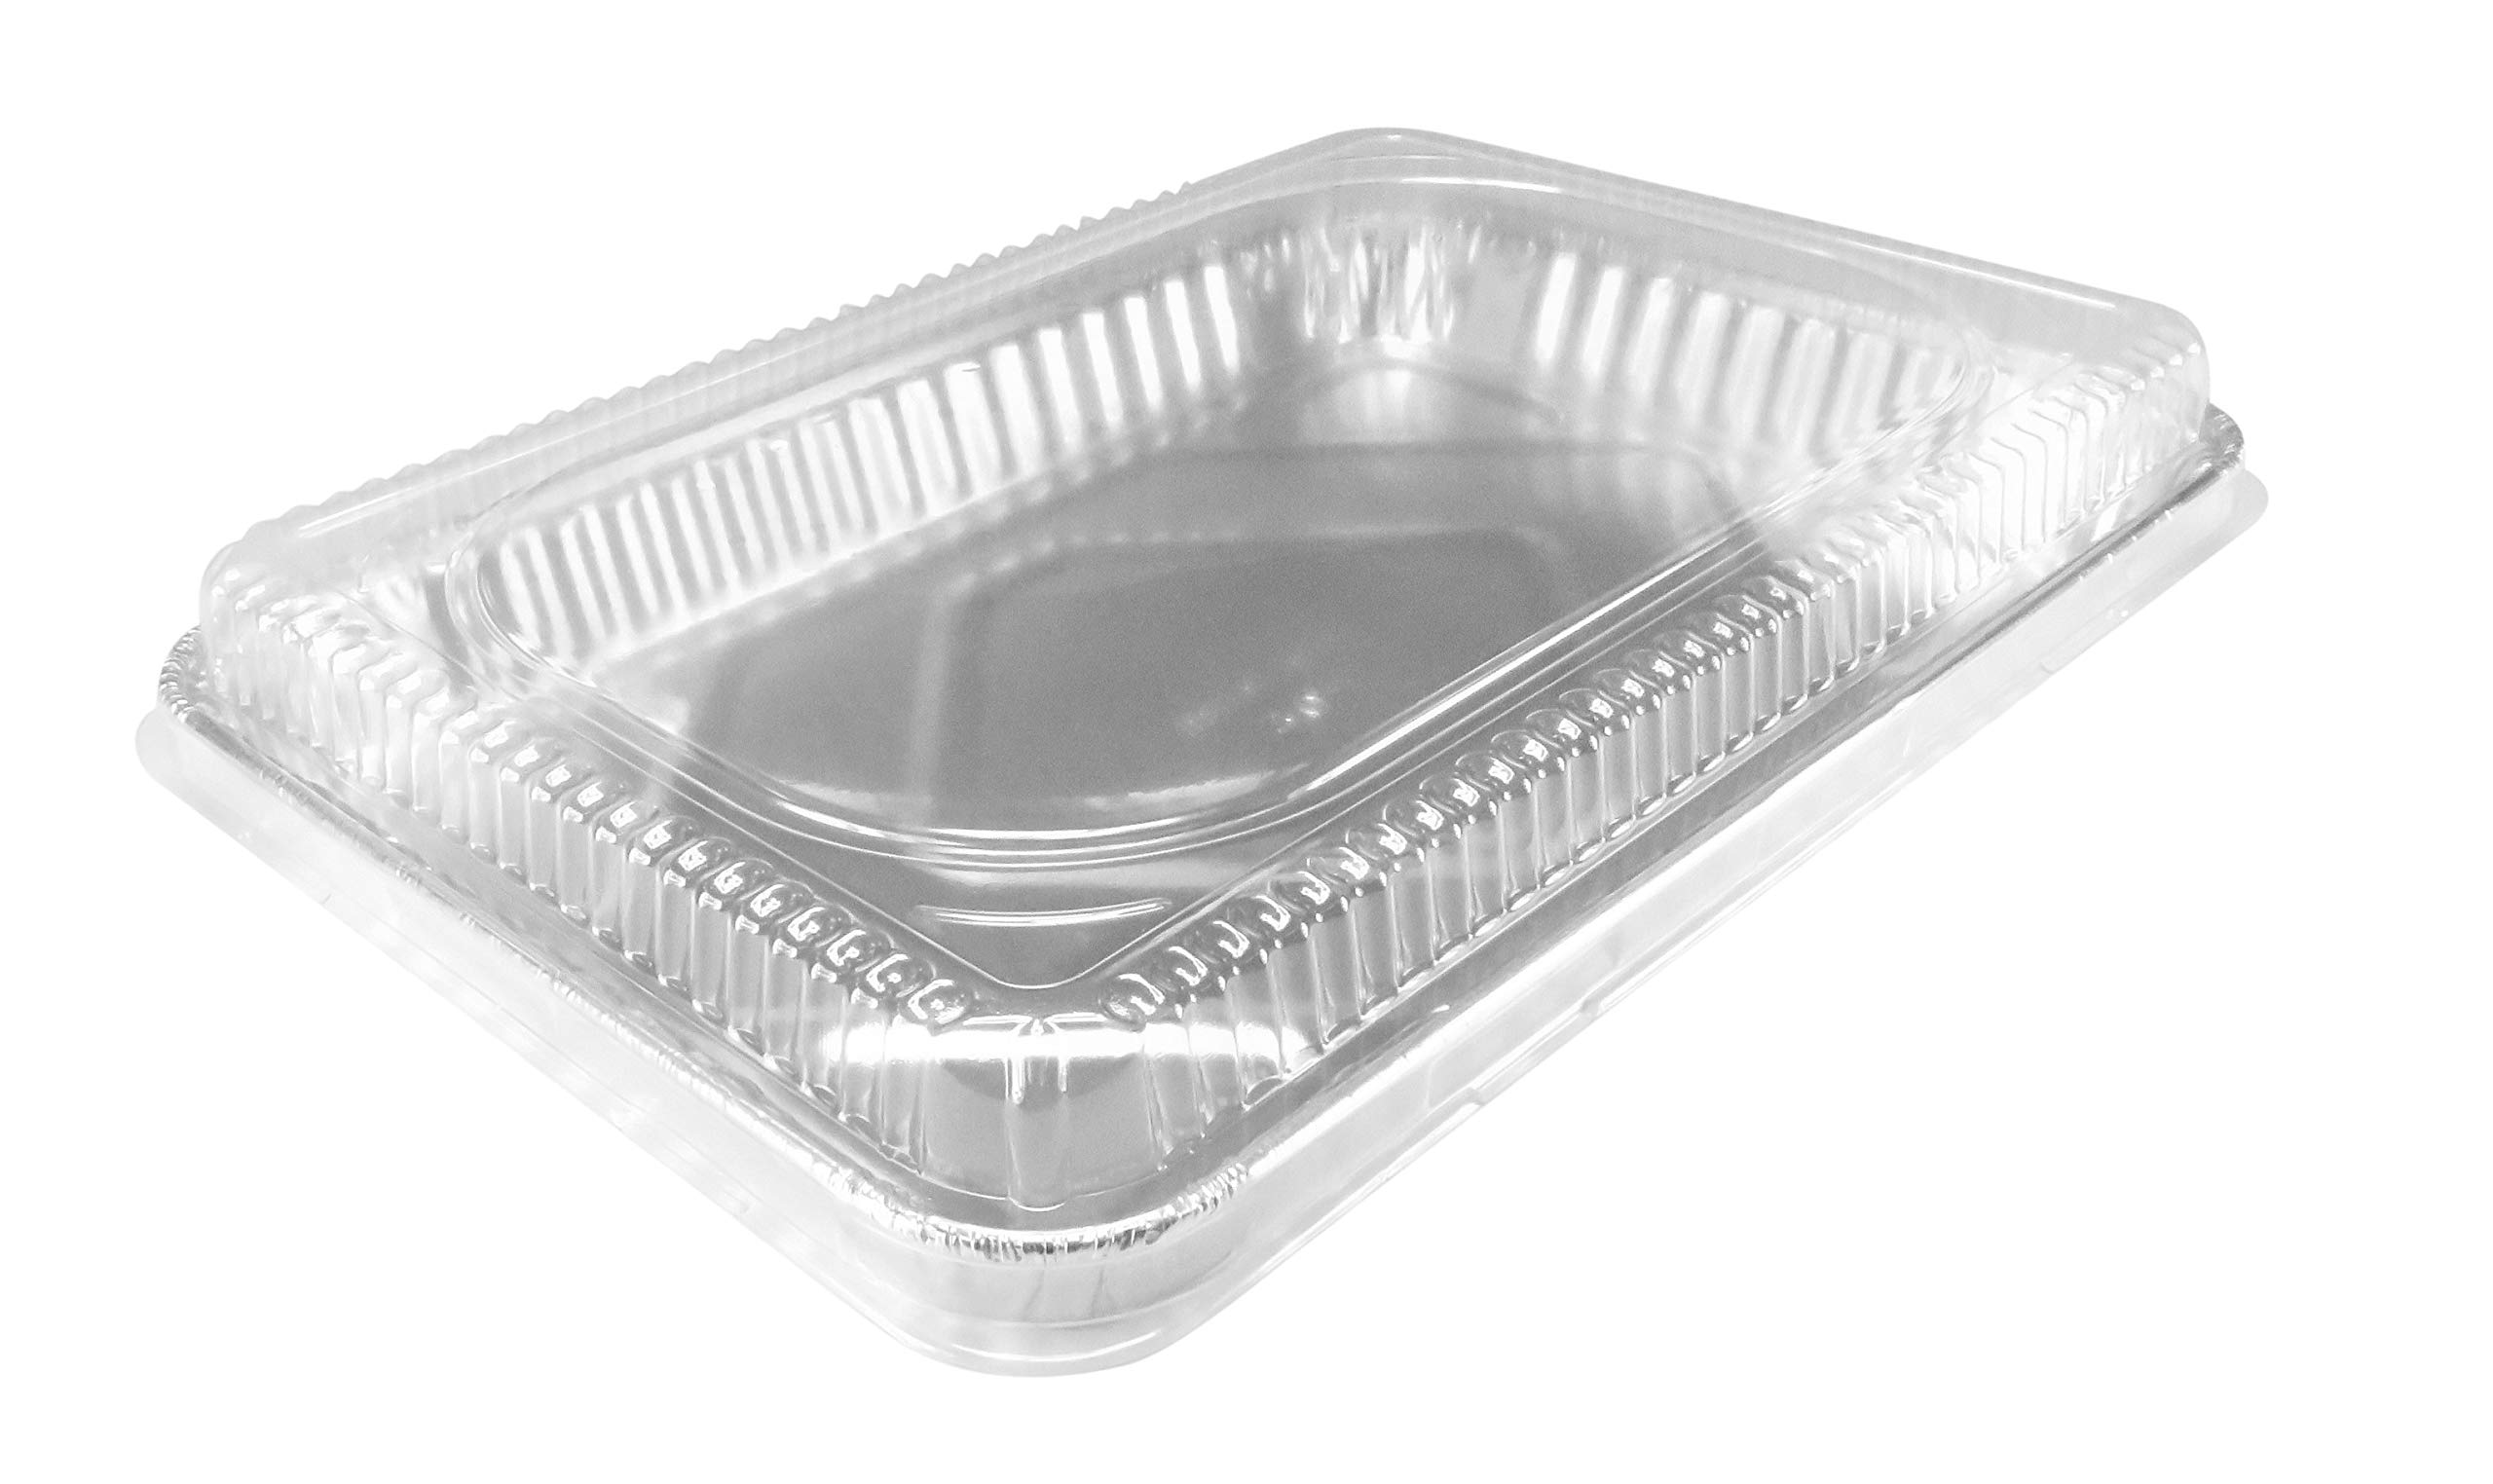 KitchenDance Disposable Aluminum 13 x 9 x 2 Cake pans with Lids- Pack of 12 pans & 12 Lids by KitchenDance